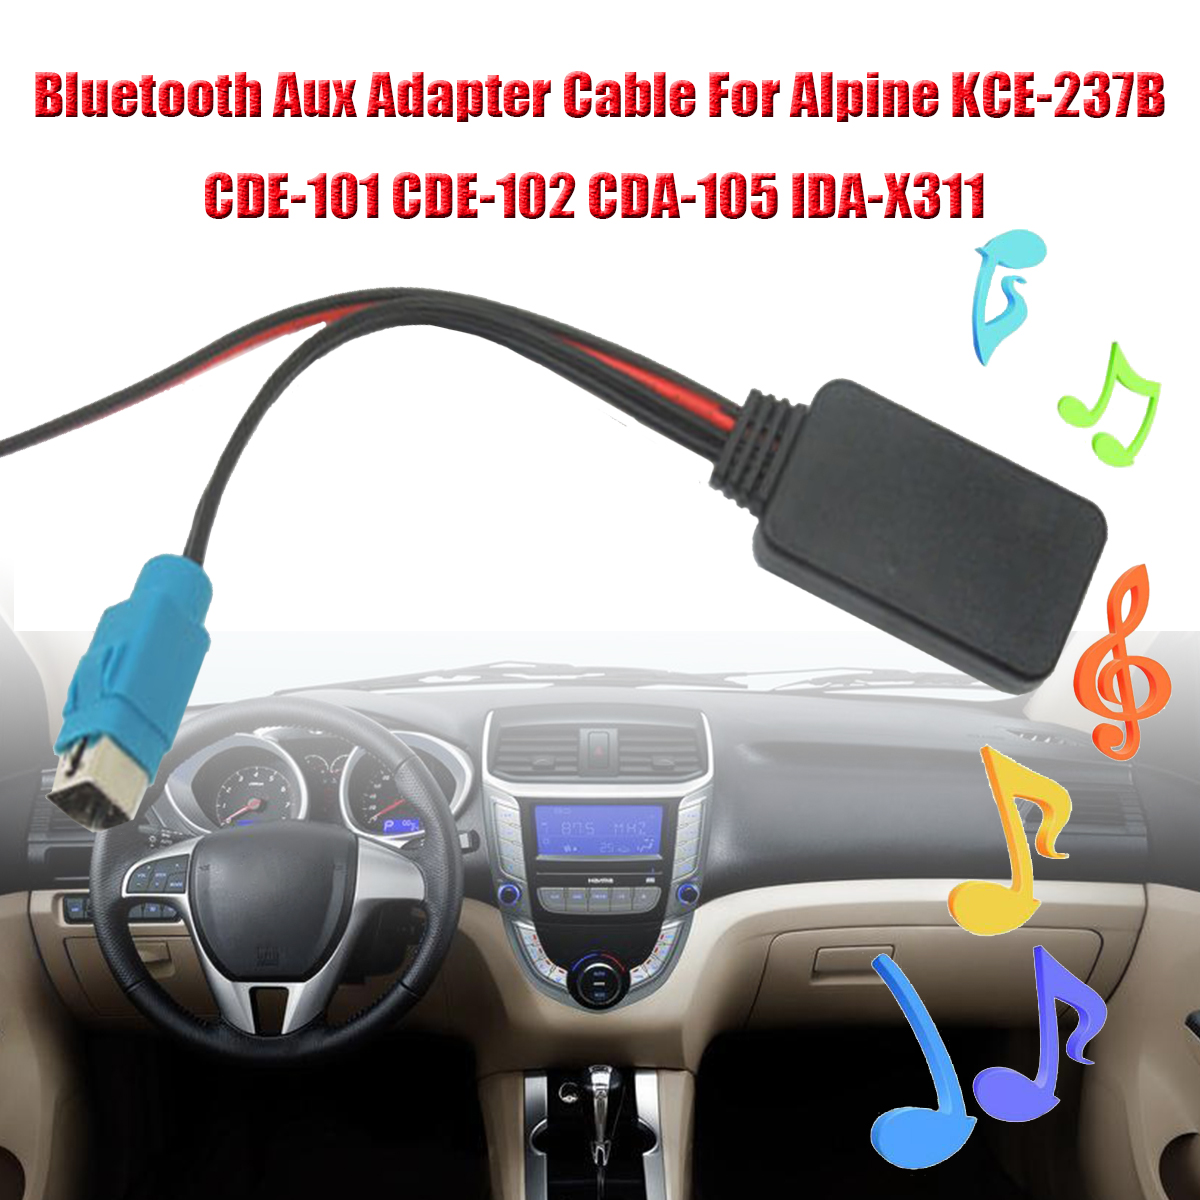 100new Mercedes Mc3520 Class 1 Laser Product A2038703389 With Ps4 Akibaamp039s Beat Reg 2 Bluetooth Aux Adapter Cable For Alpine Kce 237b Cde 101